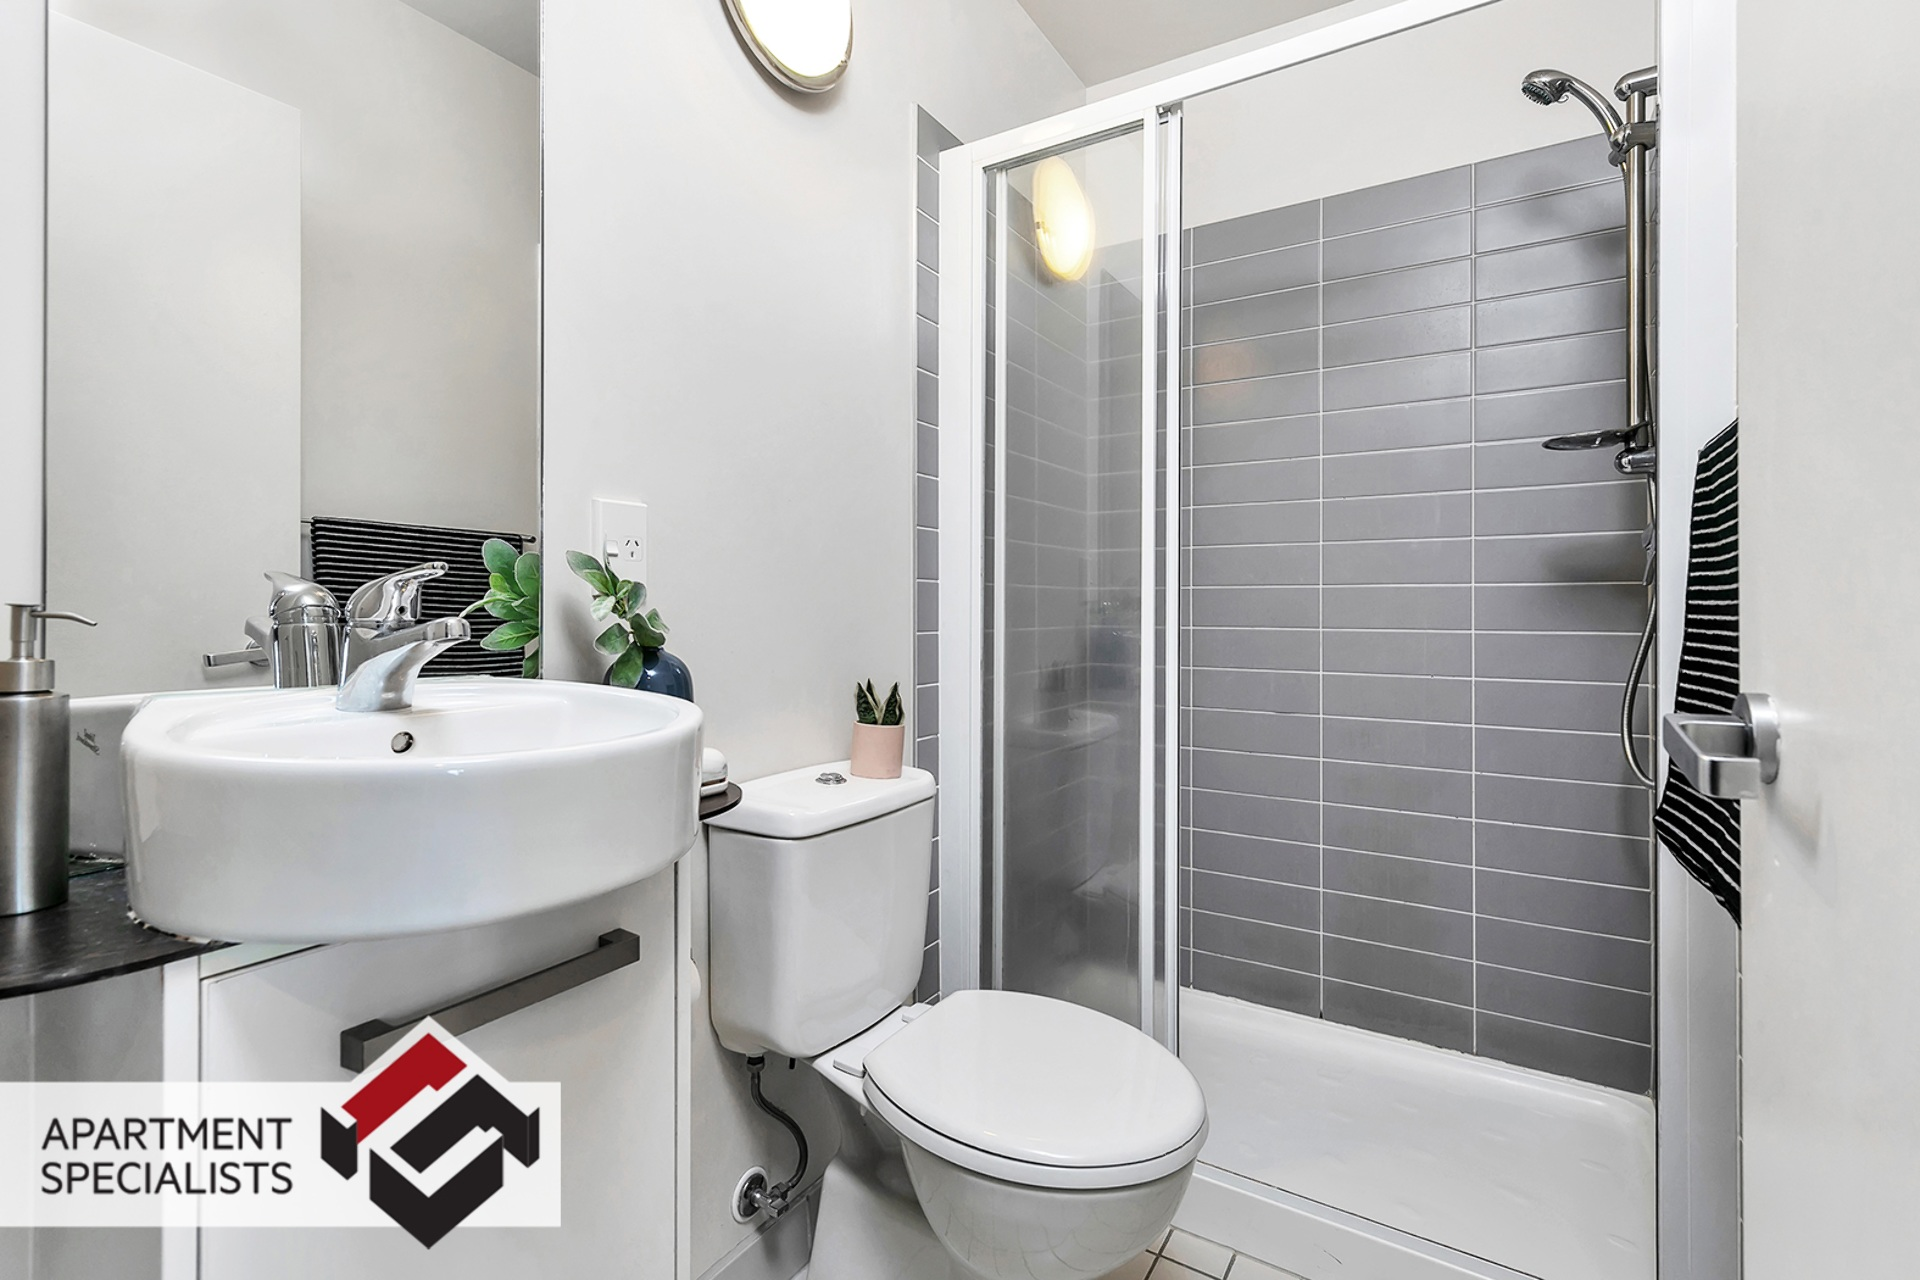 8 | 10 Waterloo Quadrant, City Centre | Apartment Specialists